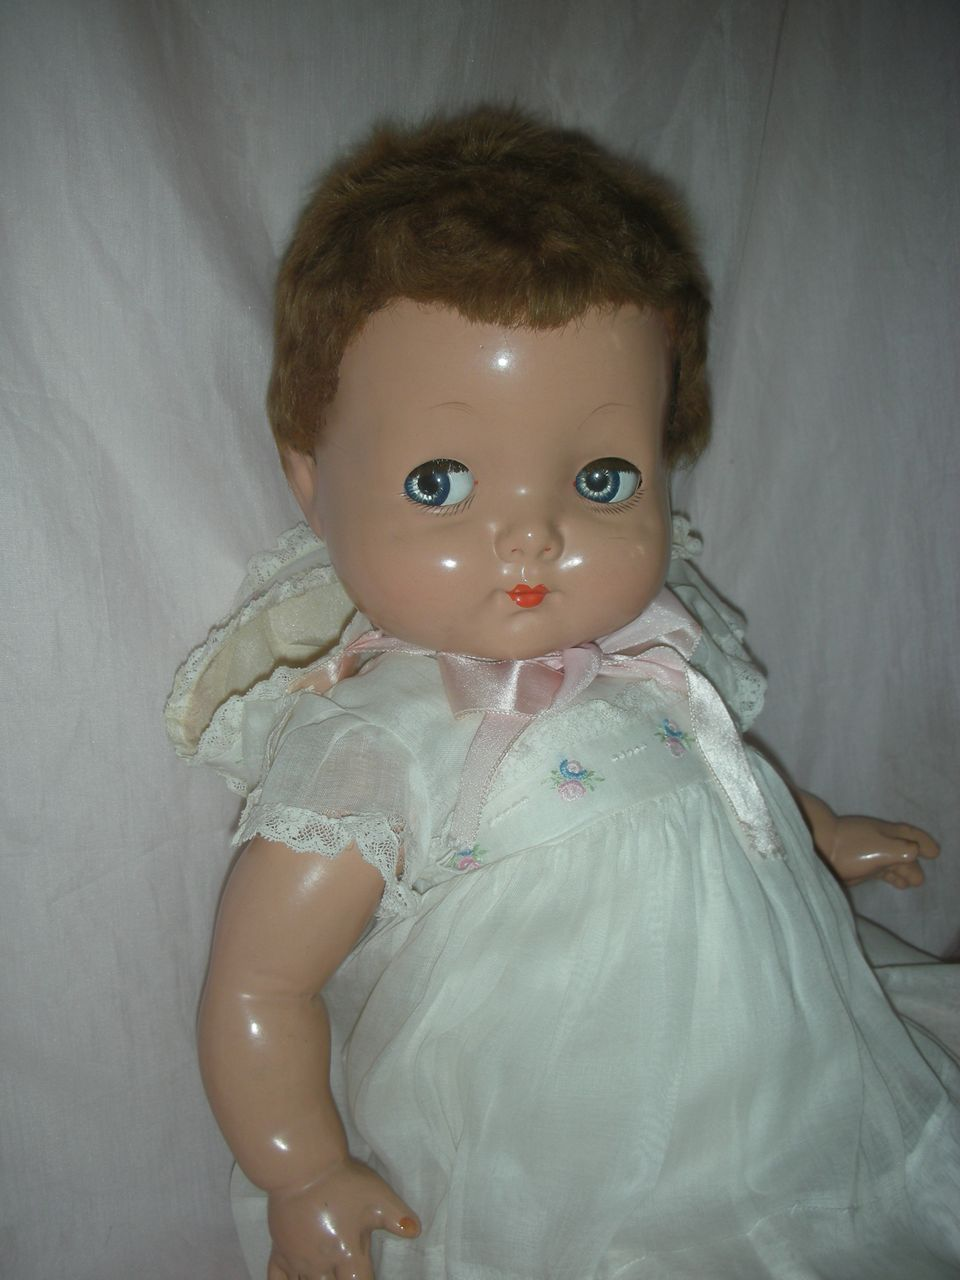 Vintage Effanbee All Composition 22 Inch Sweetie Pie Doll